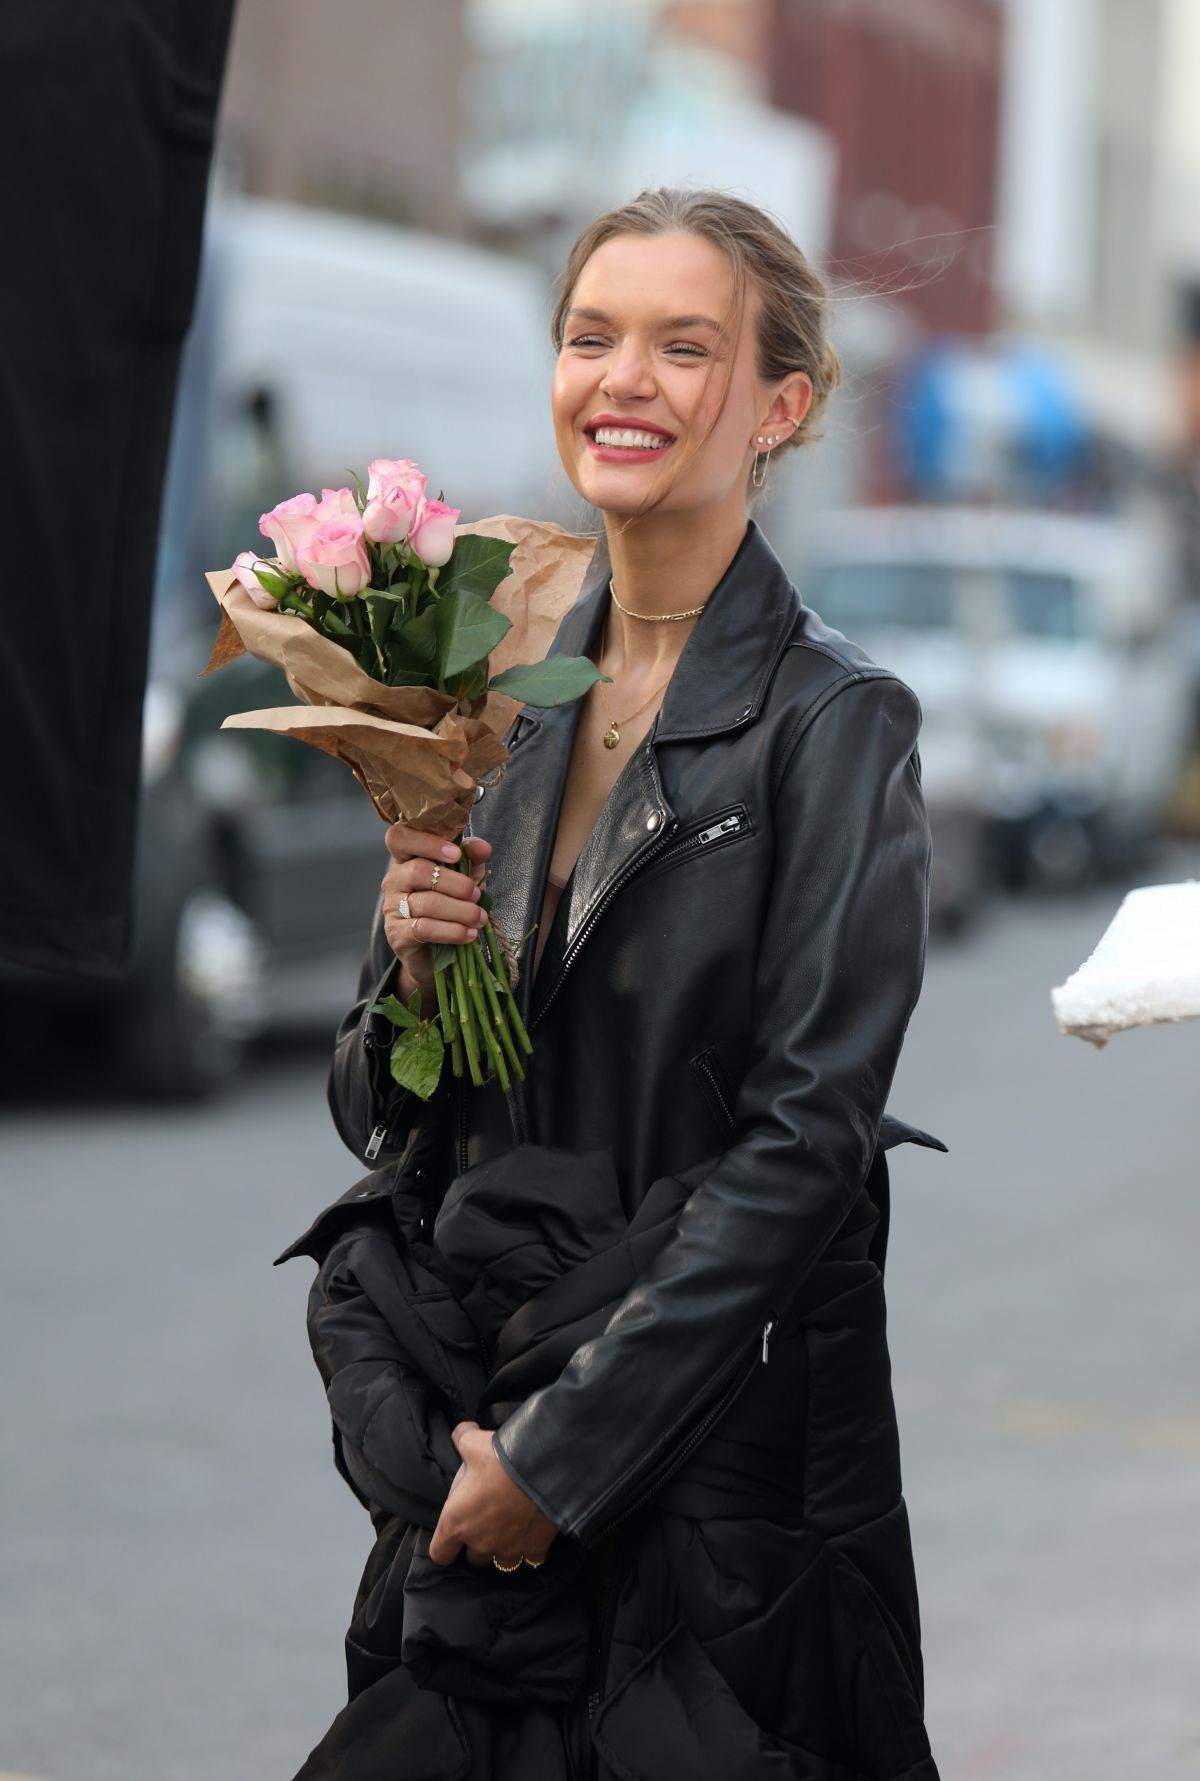 JOSEPHINE SKRIVER on the Set of Maybelline Commerc